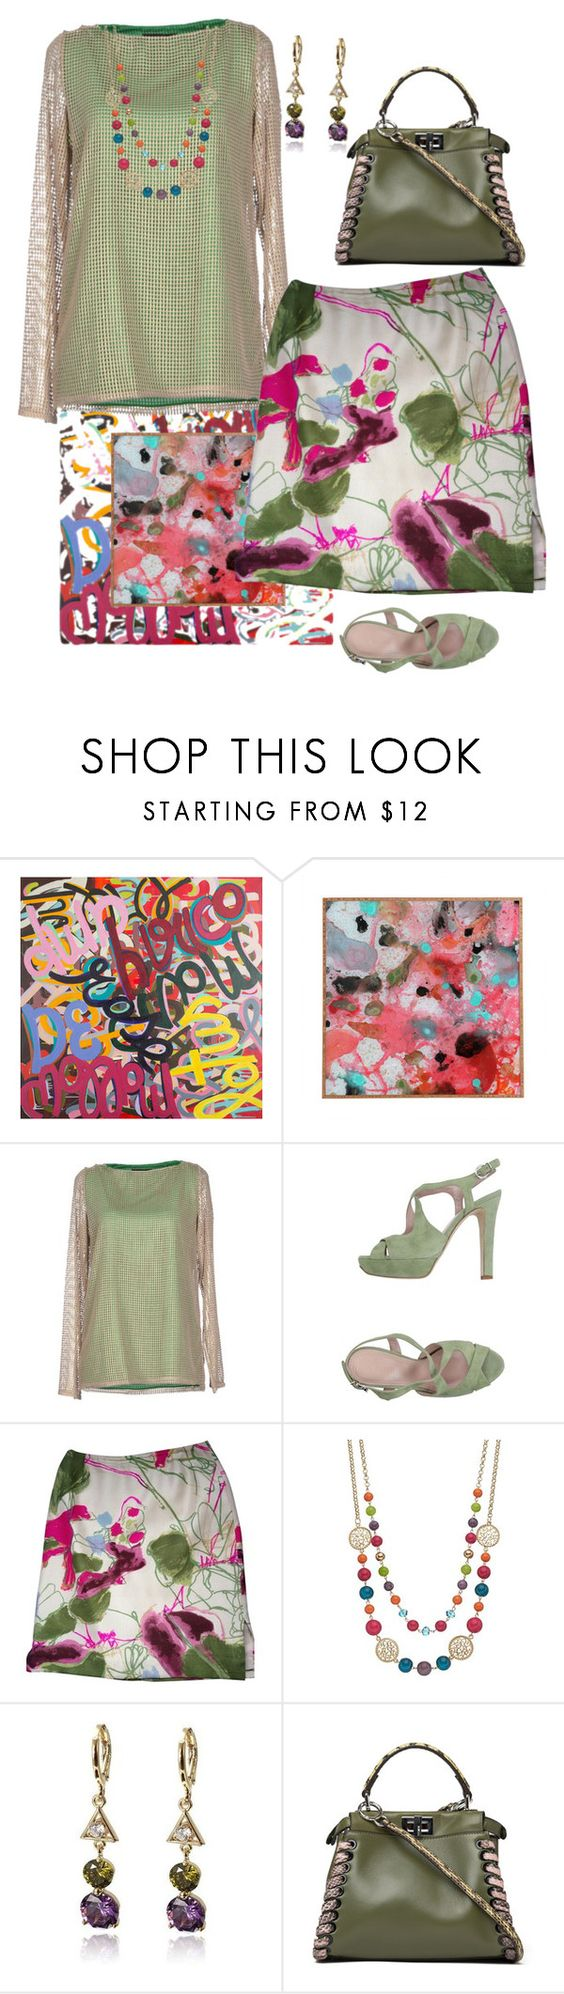 """Color Splash"" by easy-dressing ❤ liked on Polyvore featuring Jo No Fui, Altiebassi, Christian Lacroix and Fendi"